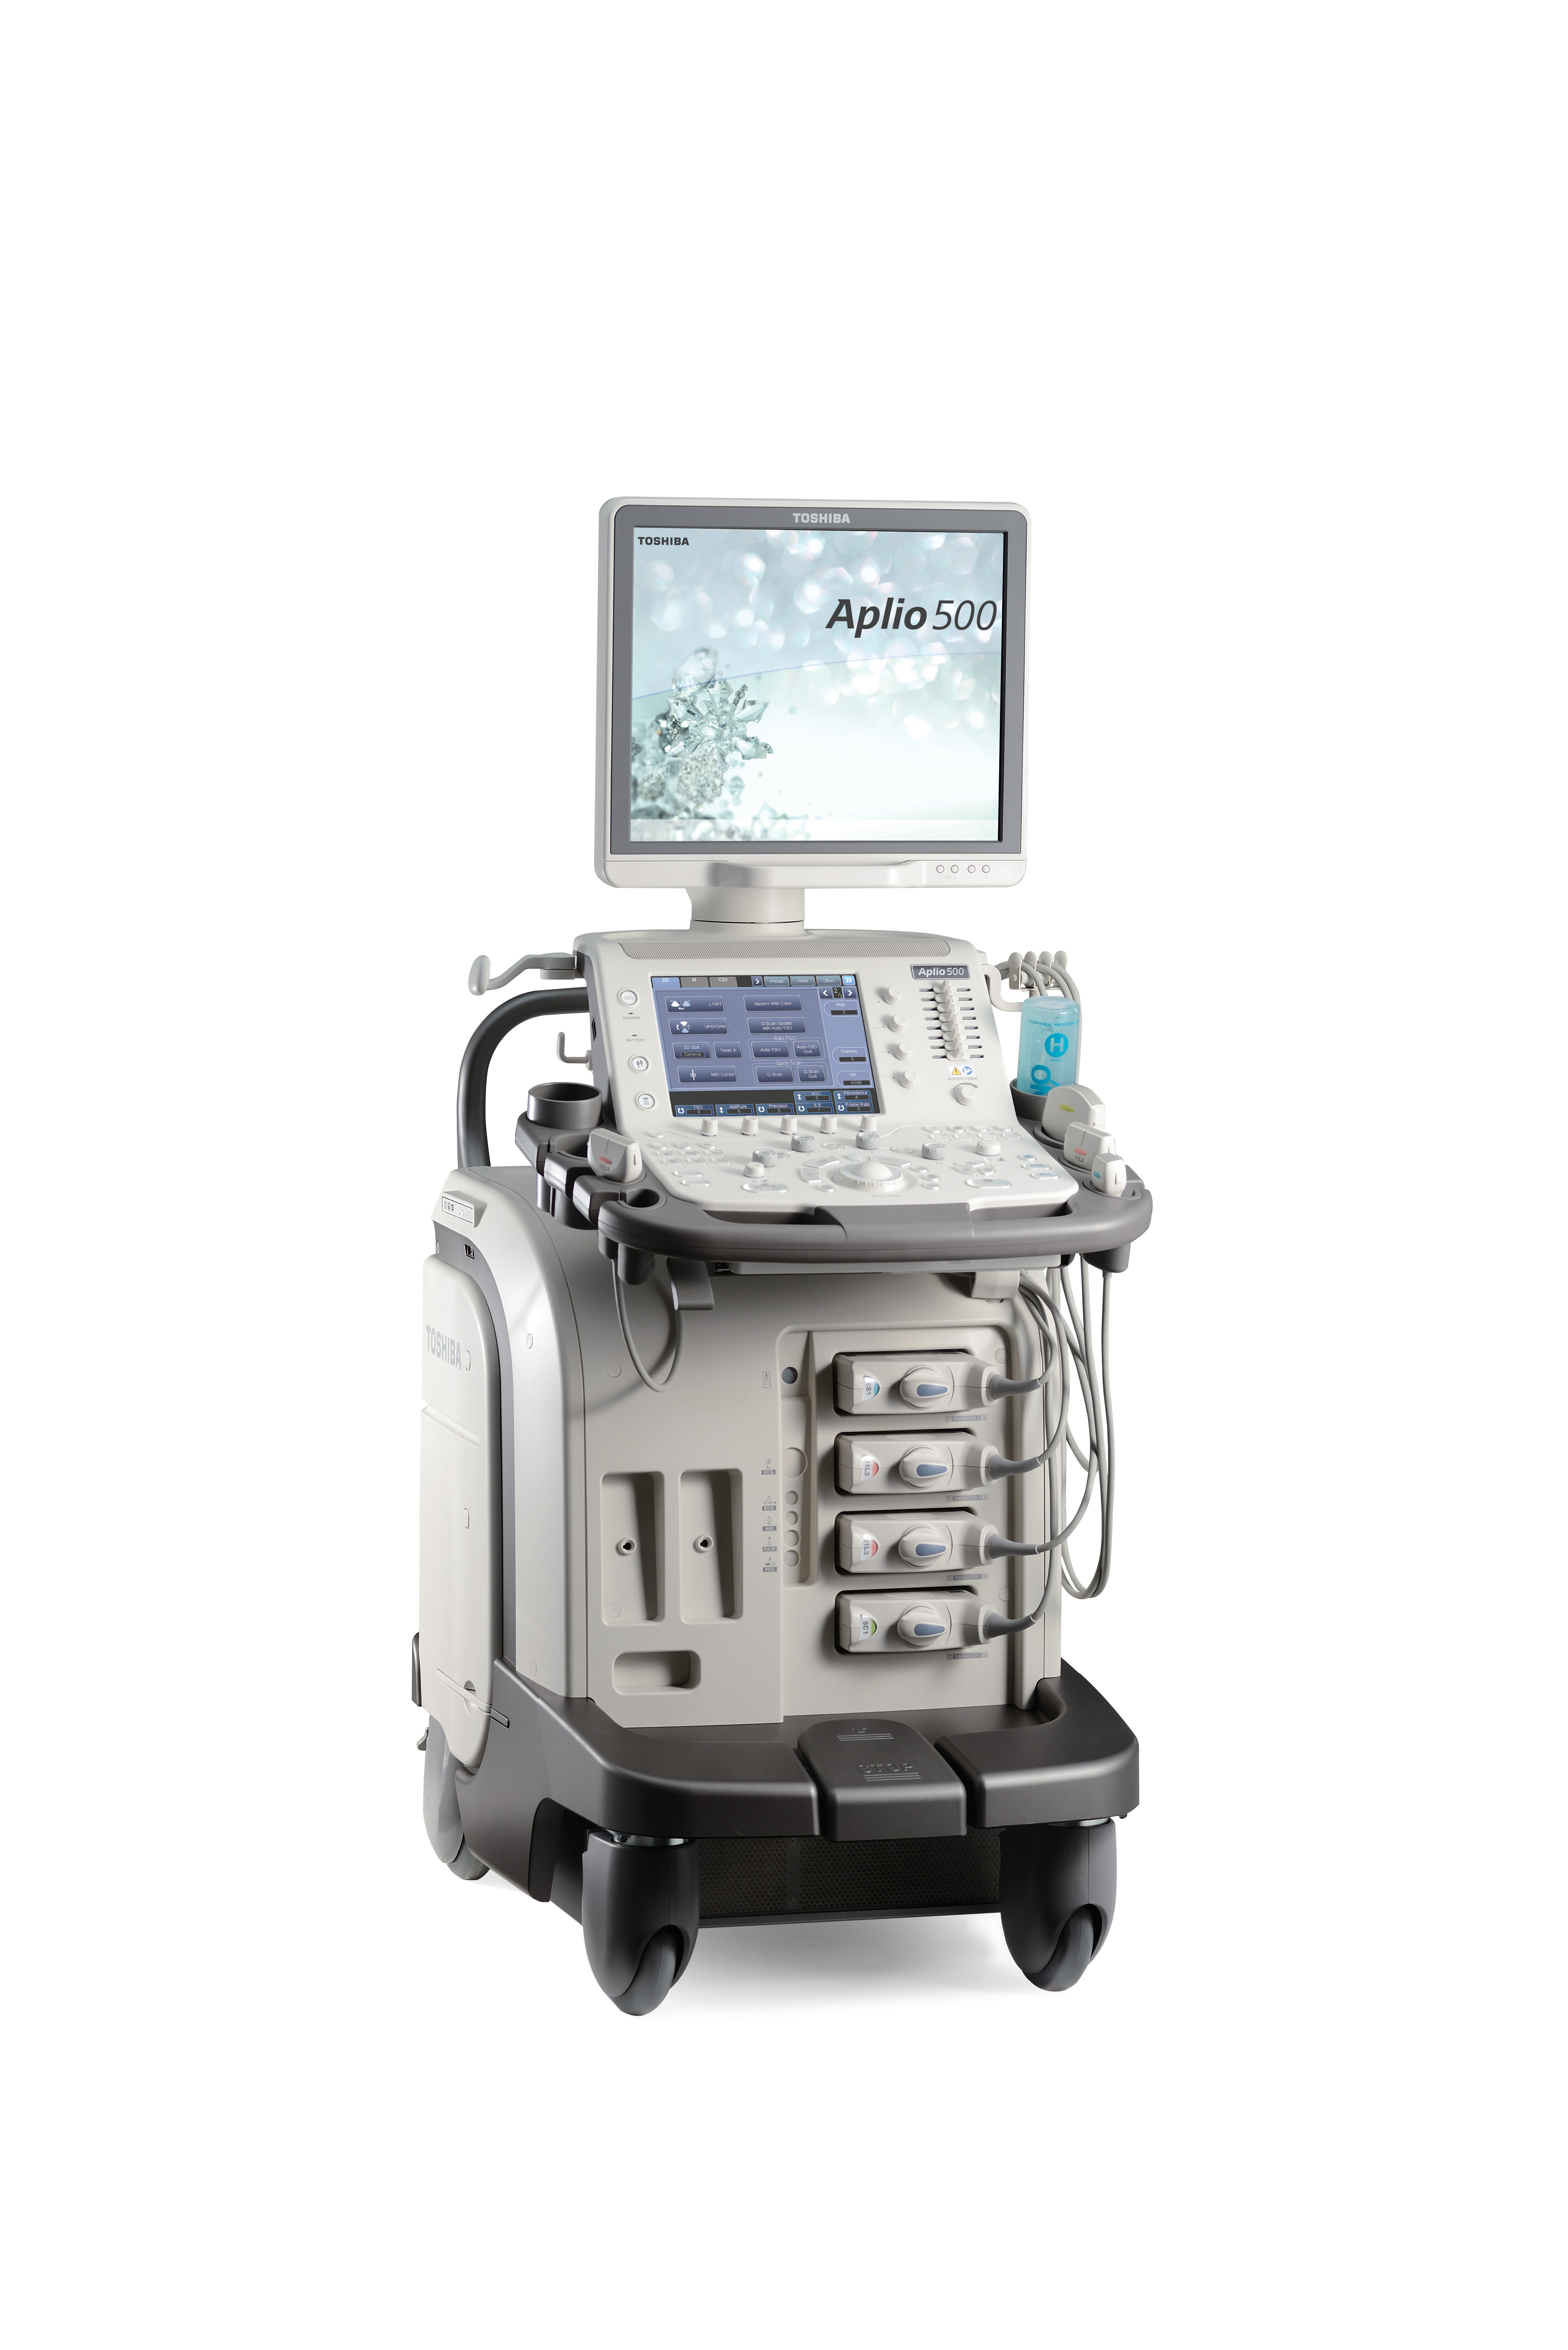 The Fetal Cardiovascular Center at Eastern Virginia Medical School (EVMS) Maternal-Fetal Medicine to use Toshiba's Aplio 500 Platinum ultrasound and its Superb Micro-Vascular Imaging in research to study the placental function and potentially help improve pregnancy outcomes.